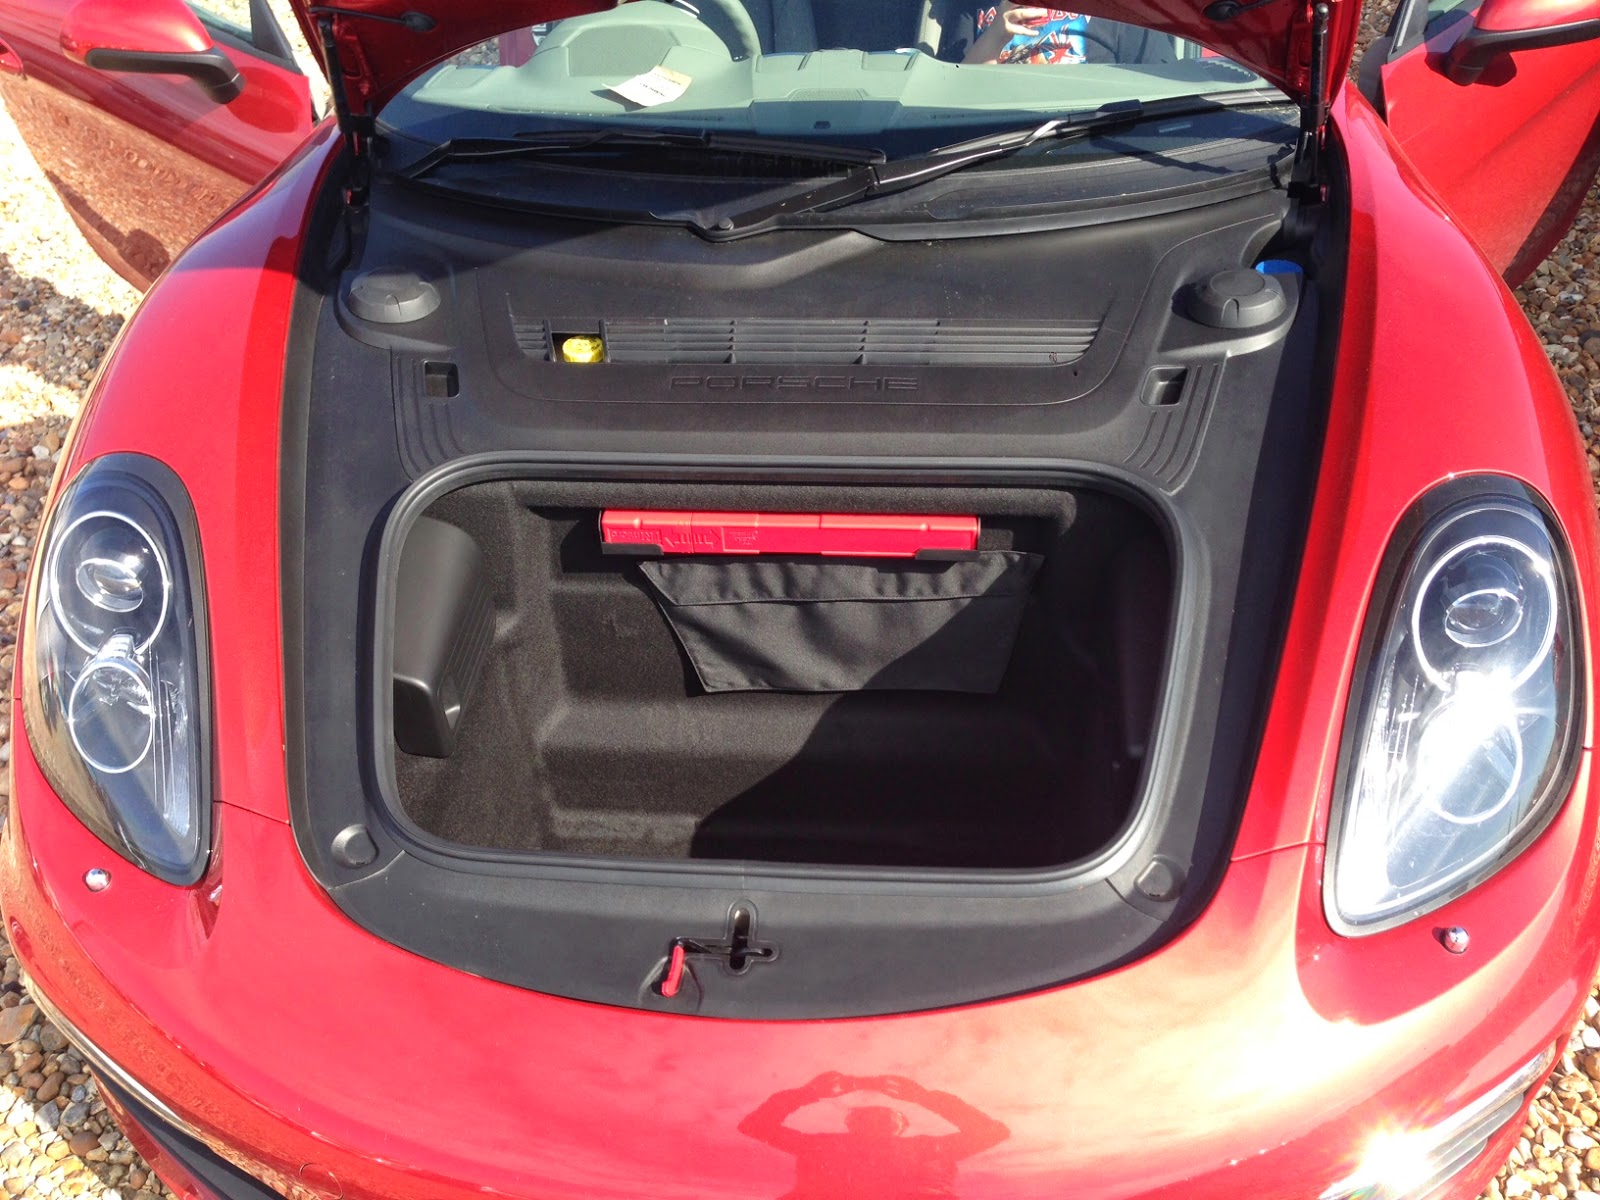 2014 Porsche Boxster S front boot